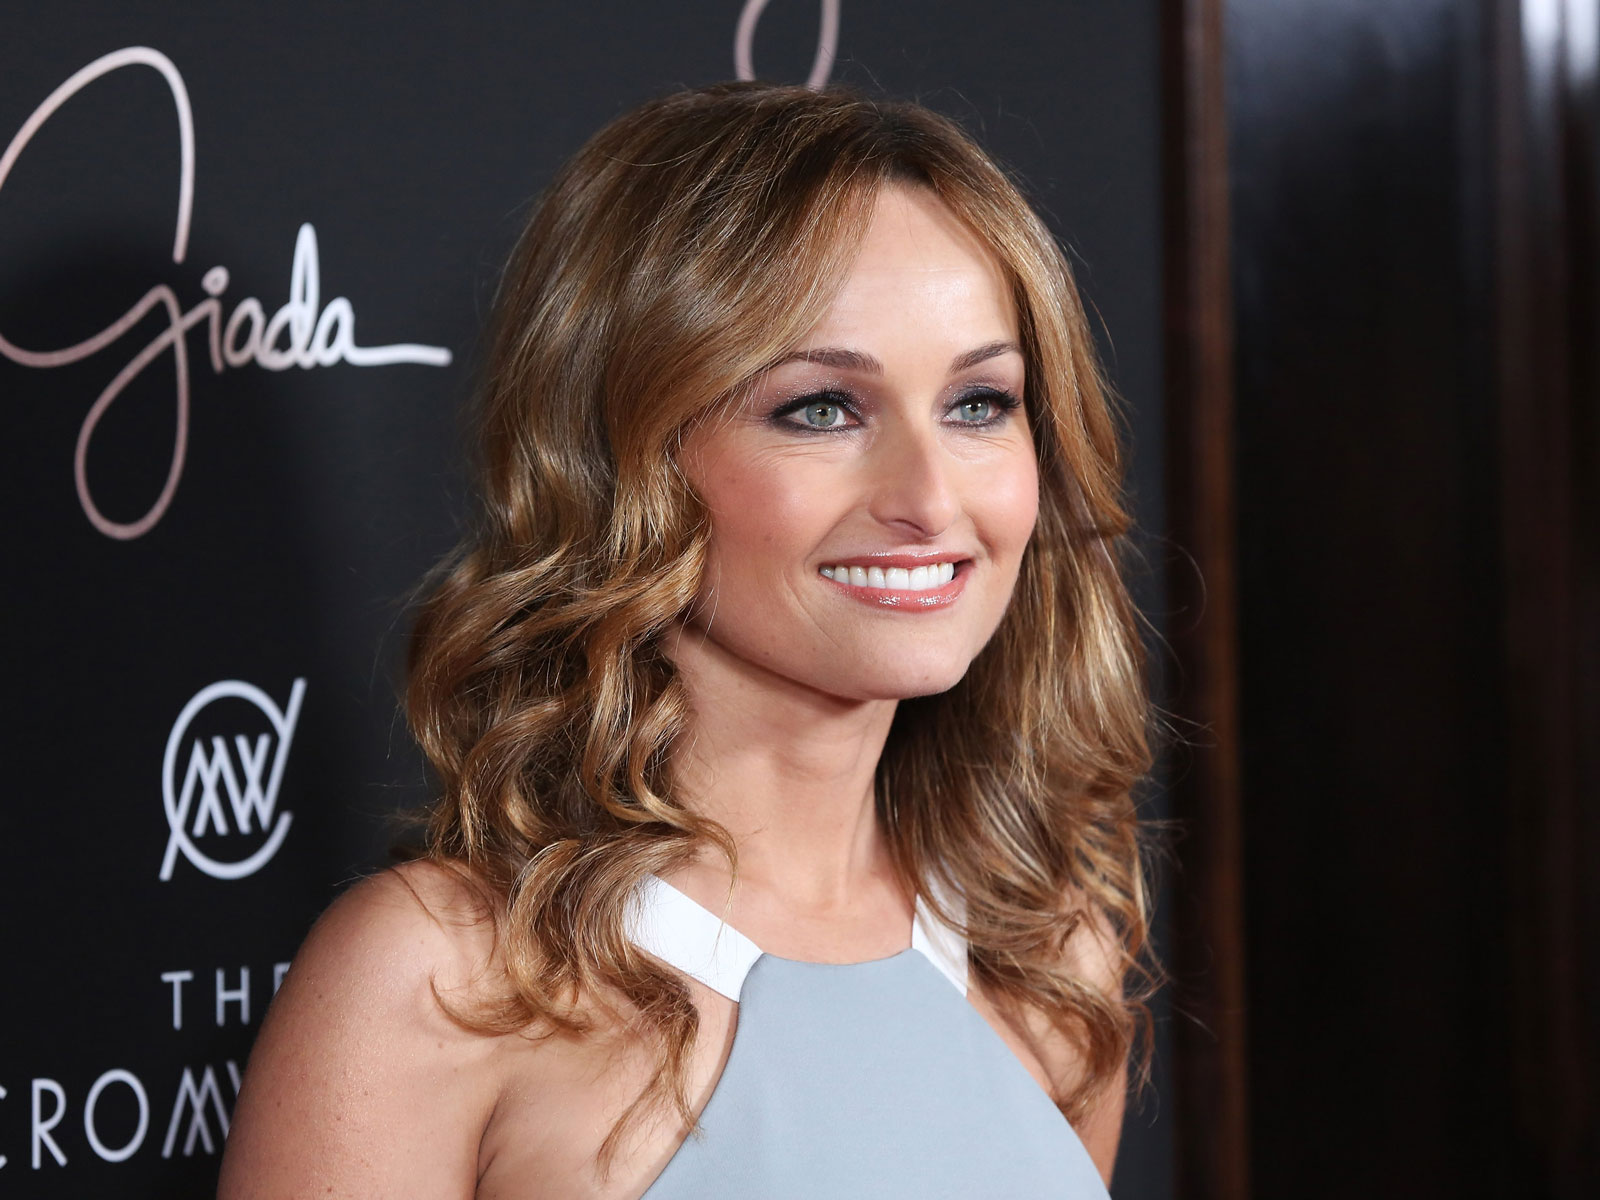 Giada De Laurentiis Thinks This Is the Most Underrated Region in Italy